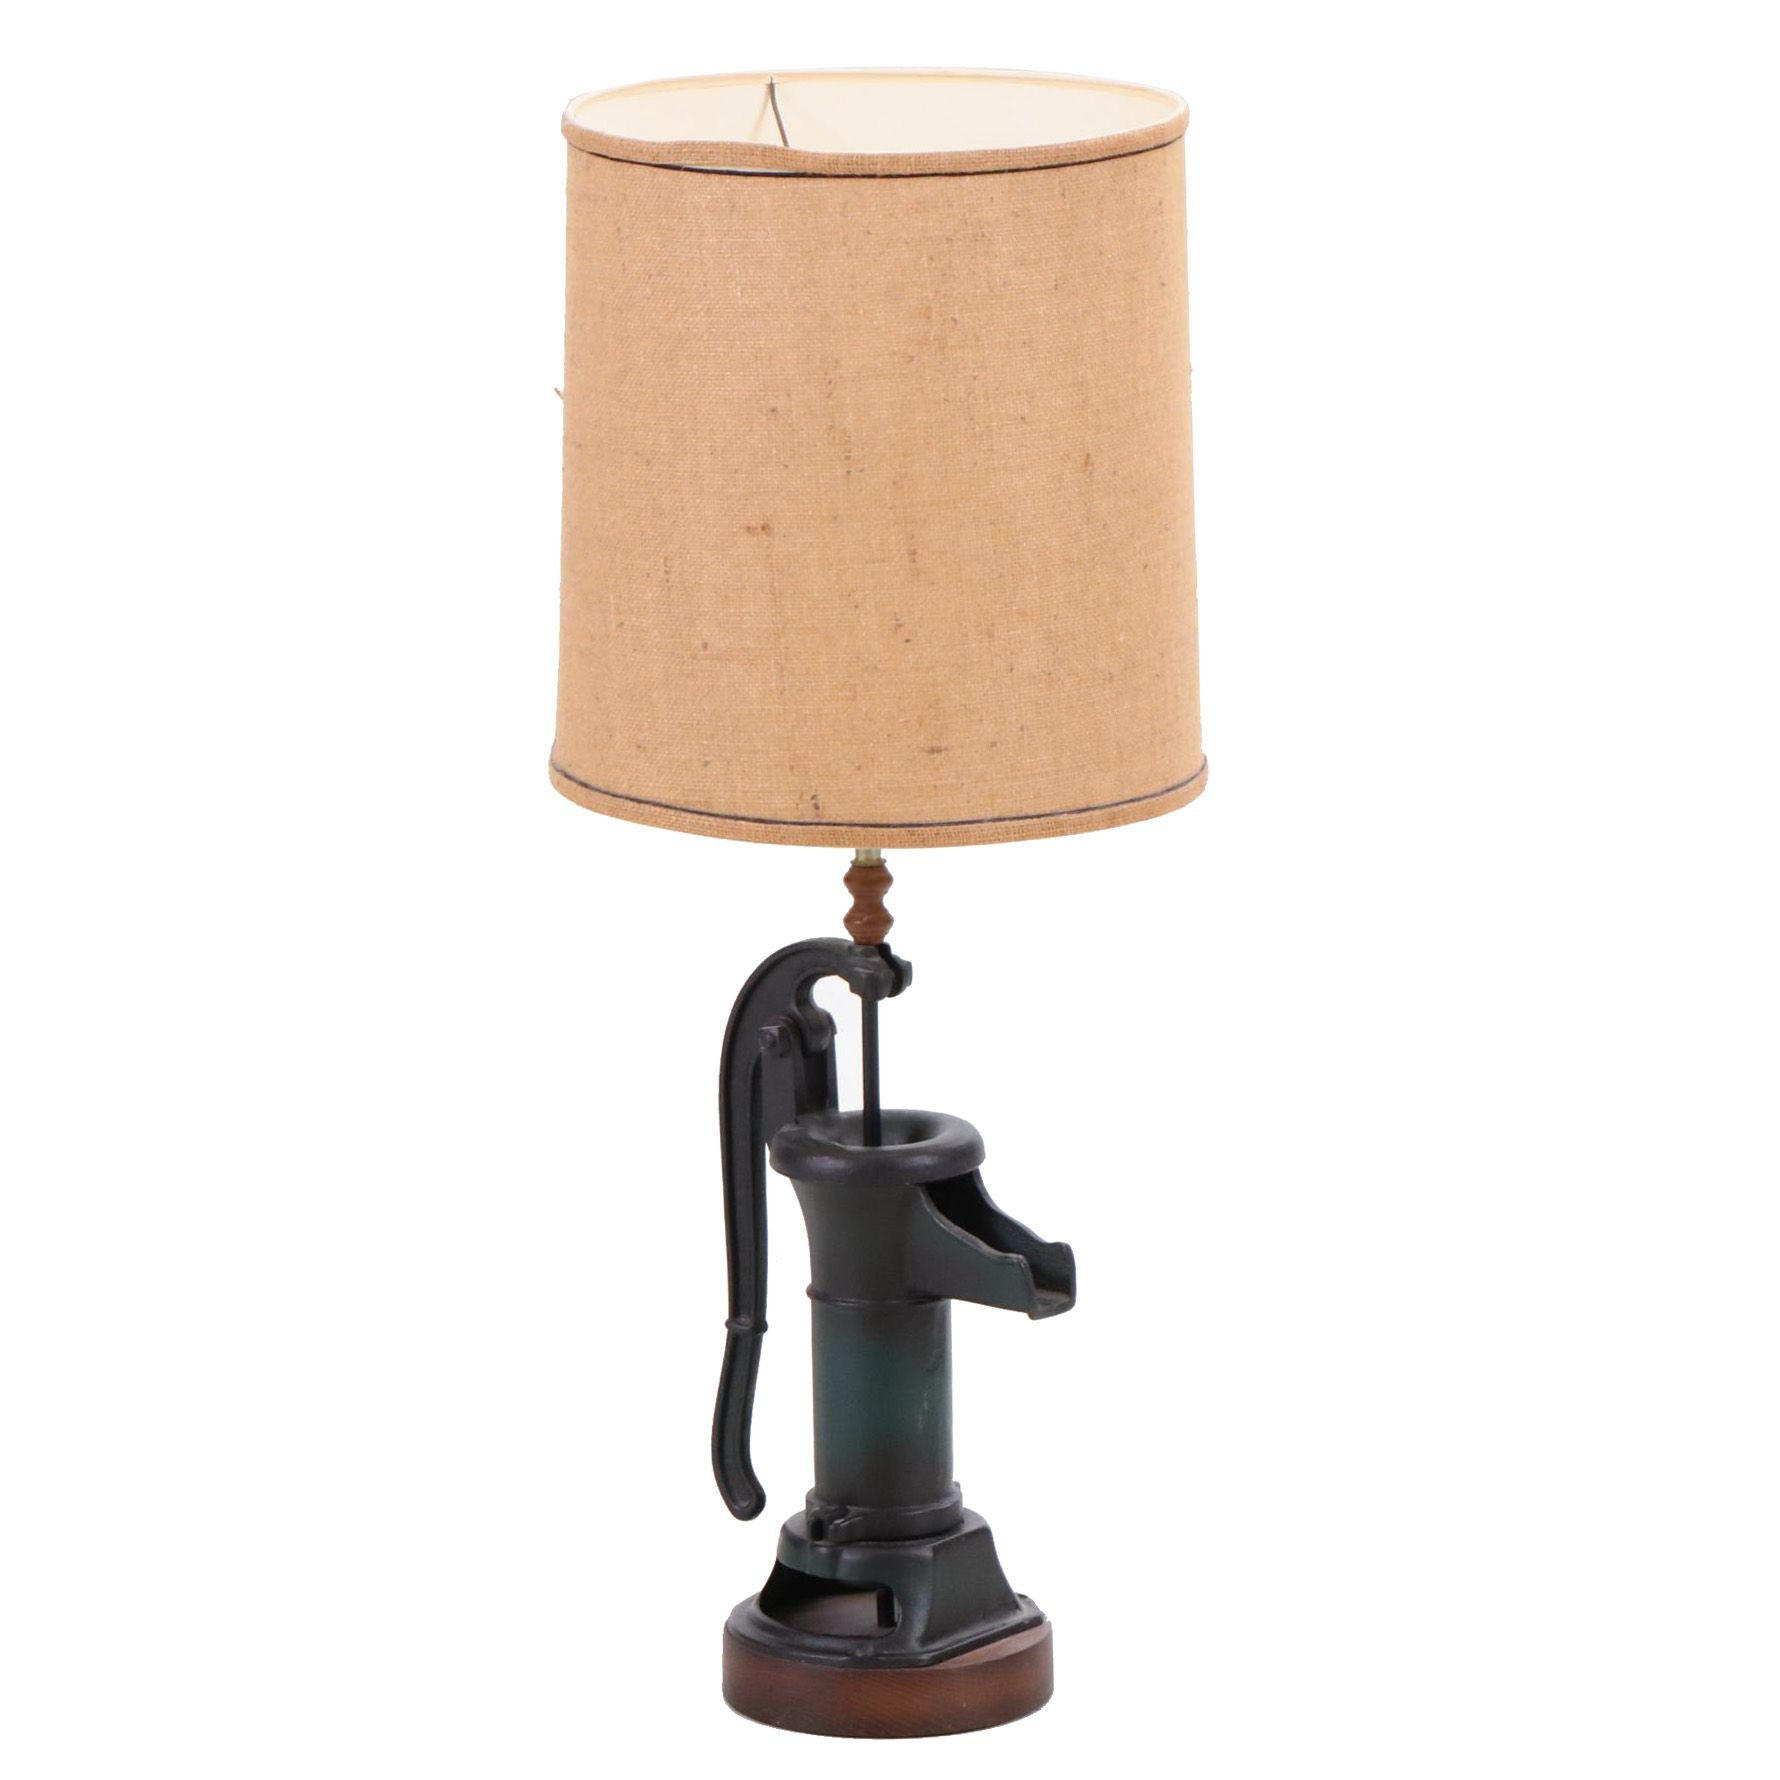 Converted Hand Water Pump Table Lamp with Lamp Shade, Mid-Century